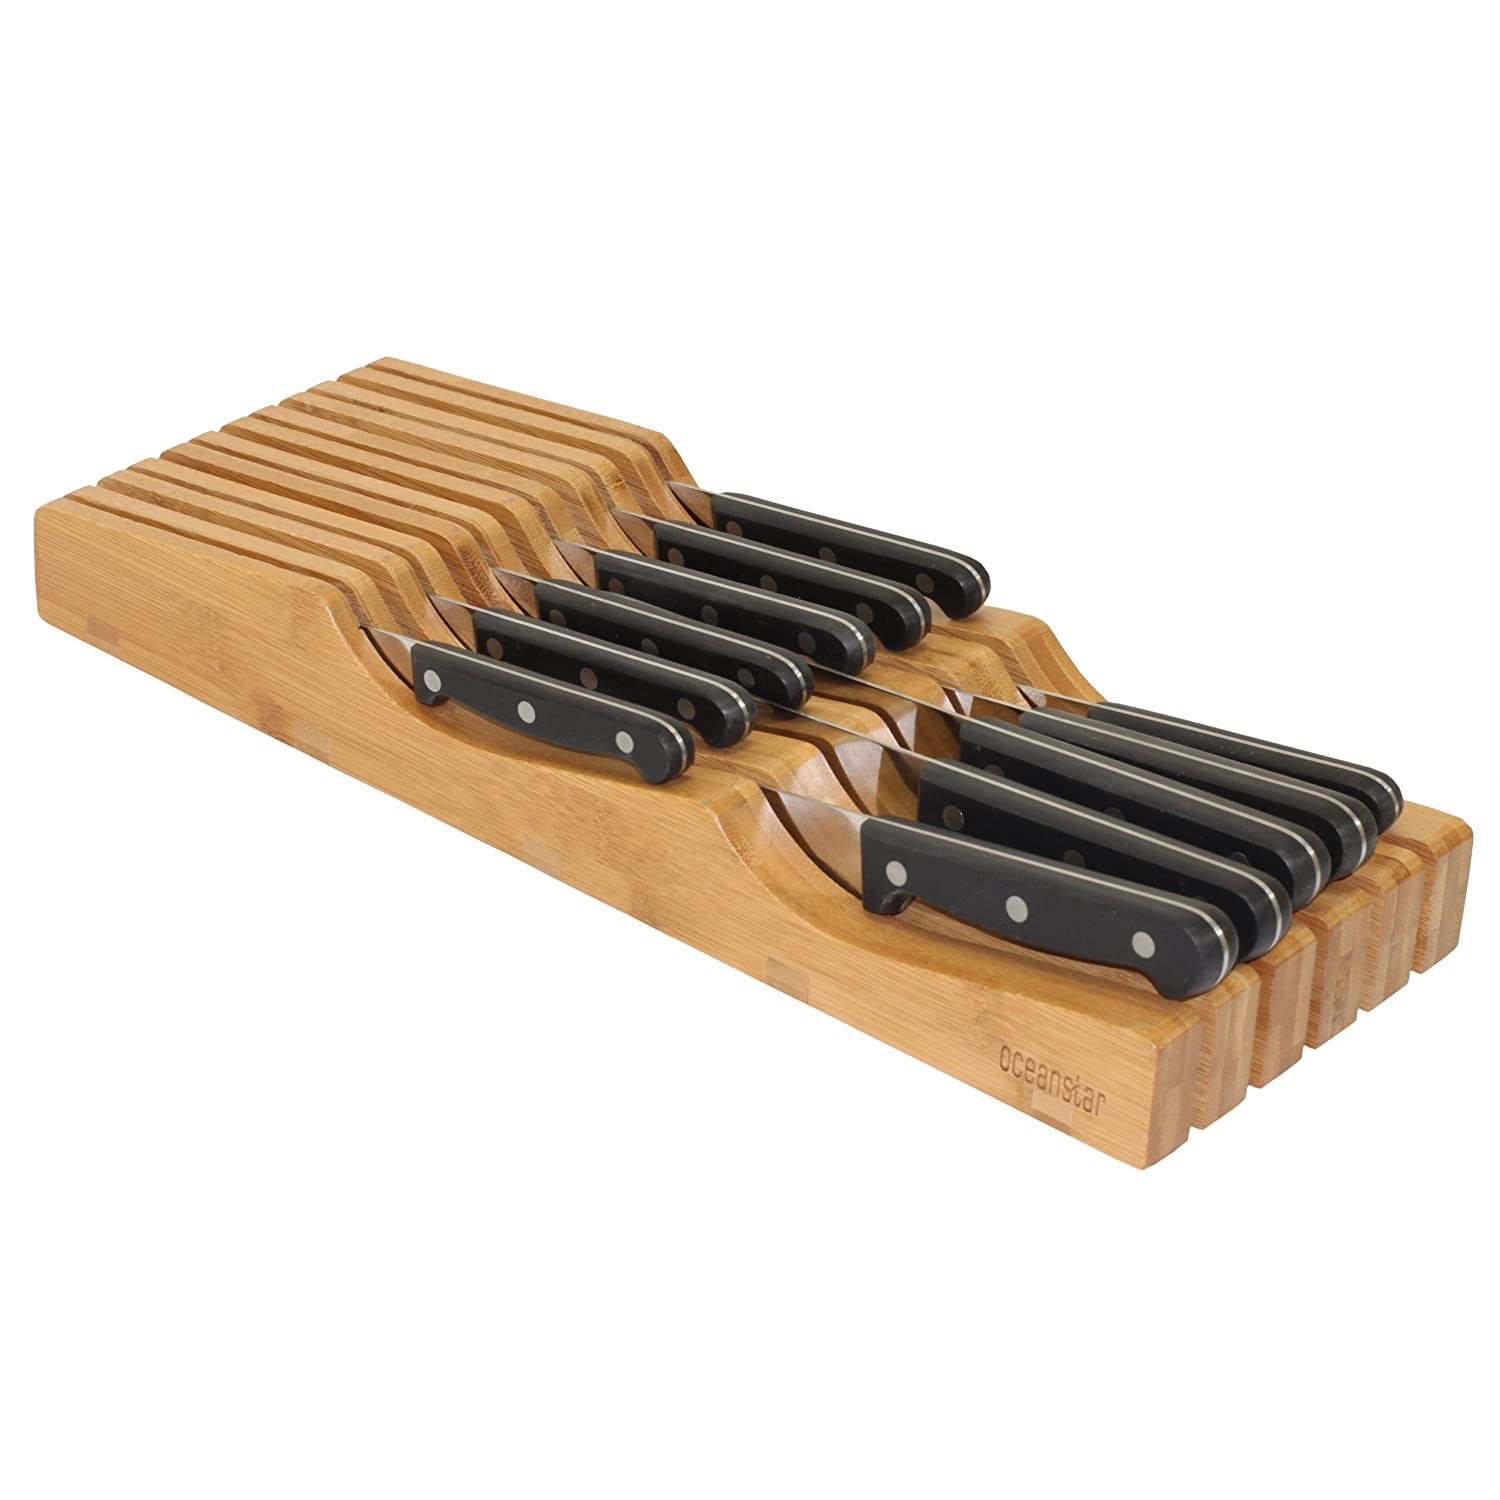 Amazon.com: Oceanstar In Drawer Bamboo Knife Organizer: Kitchen U0026 Dining